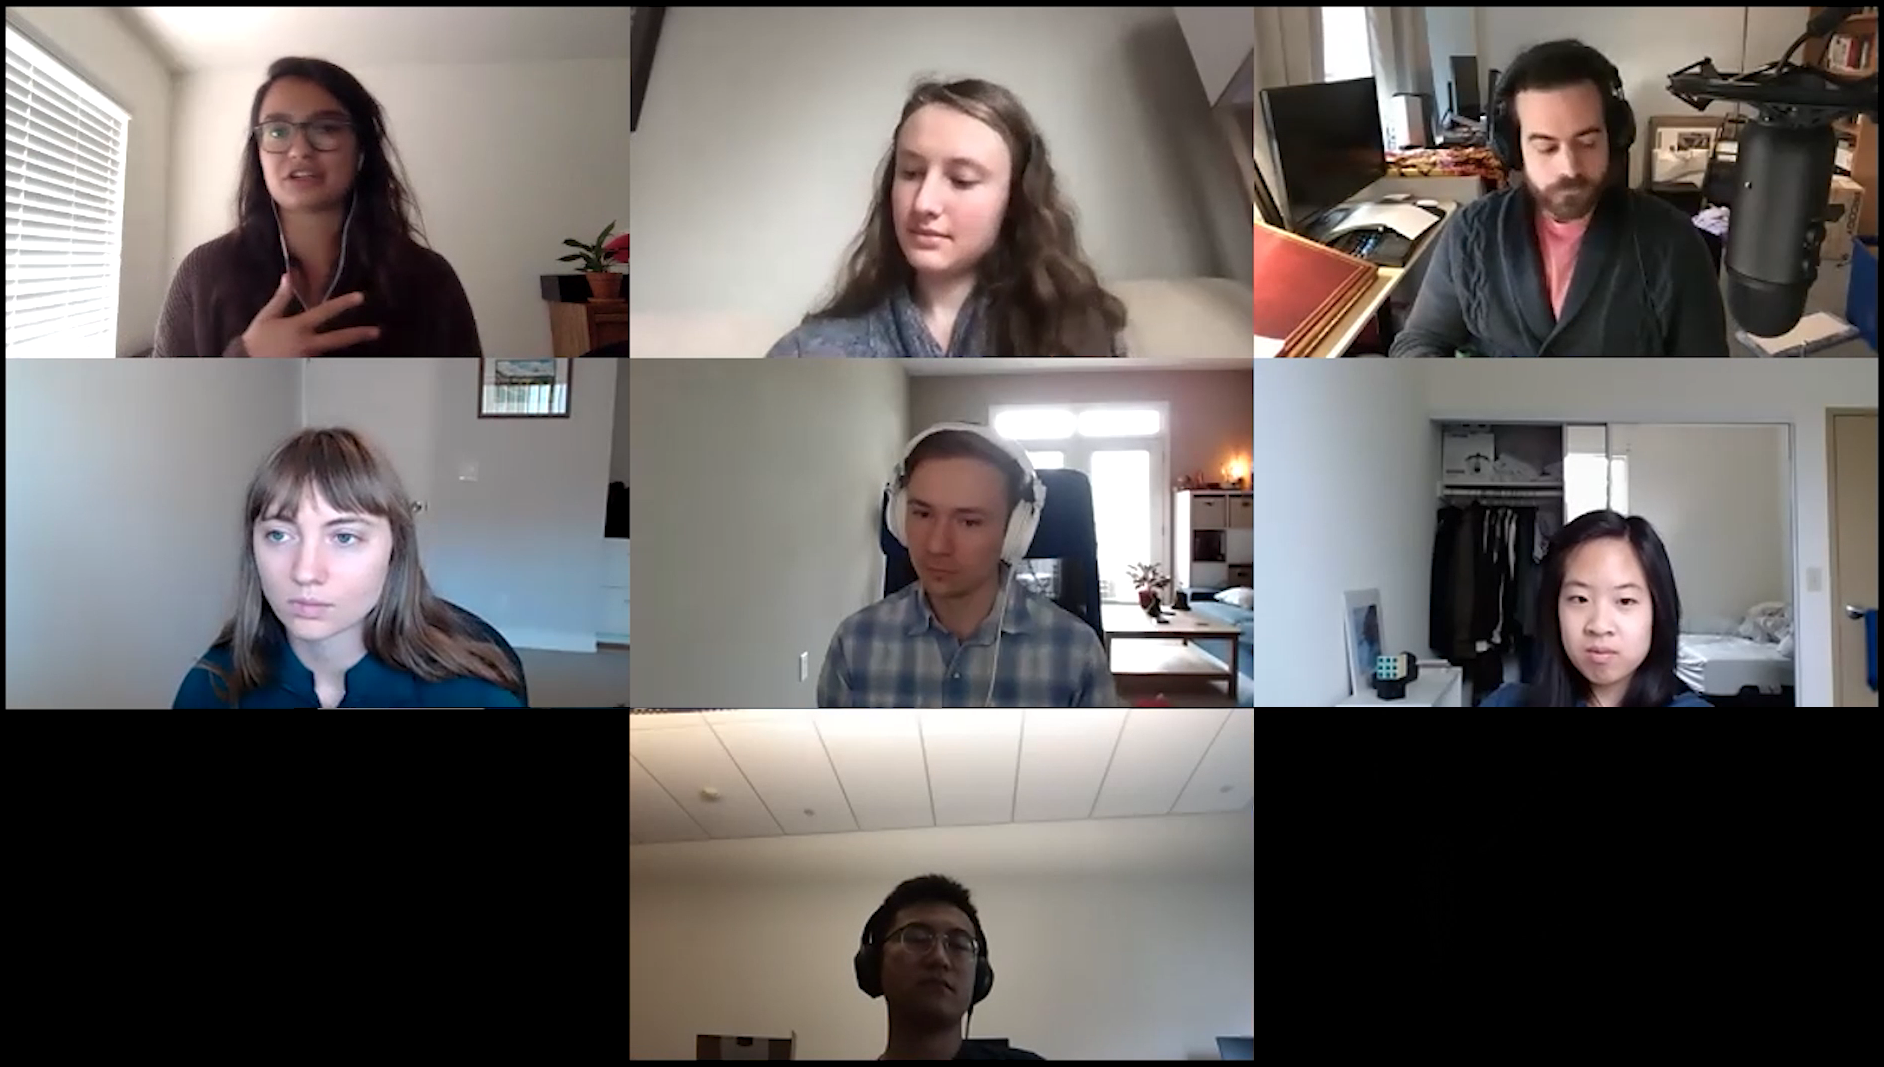 The panel of graduate students